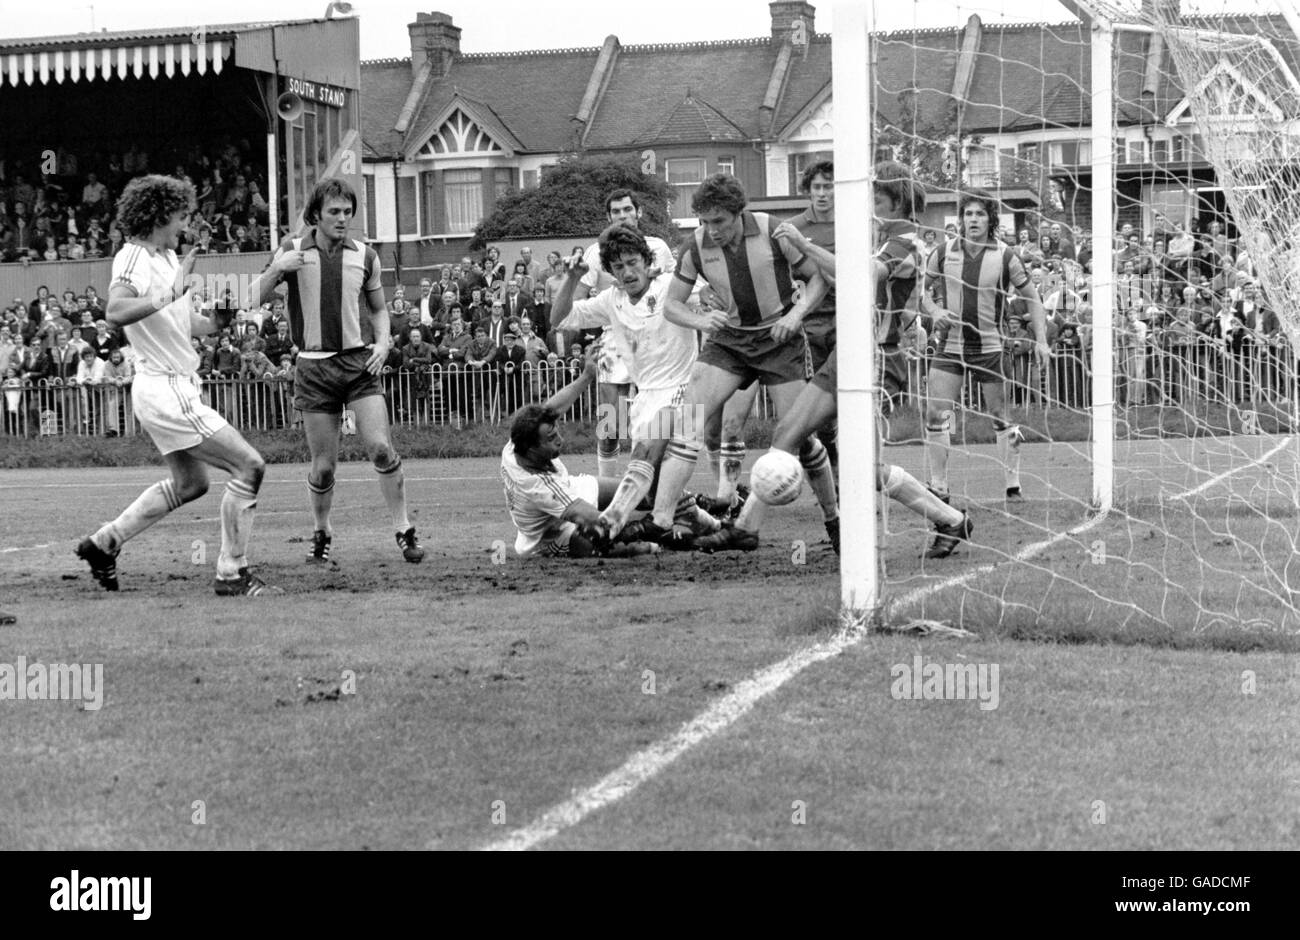 Soccer - Football League Division Four - Wimbledon v Halifax Town - Stock Image